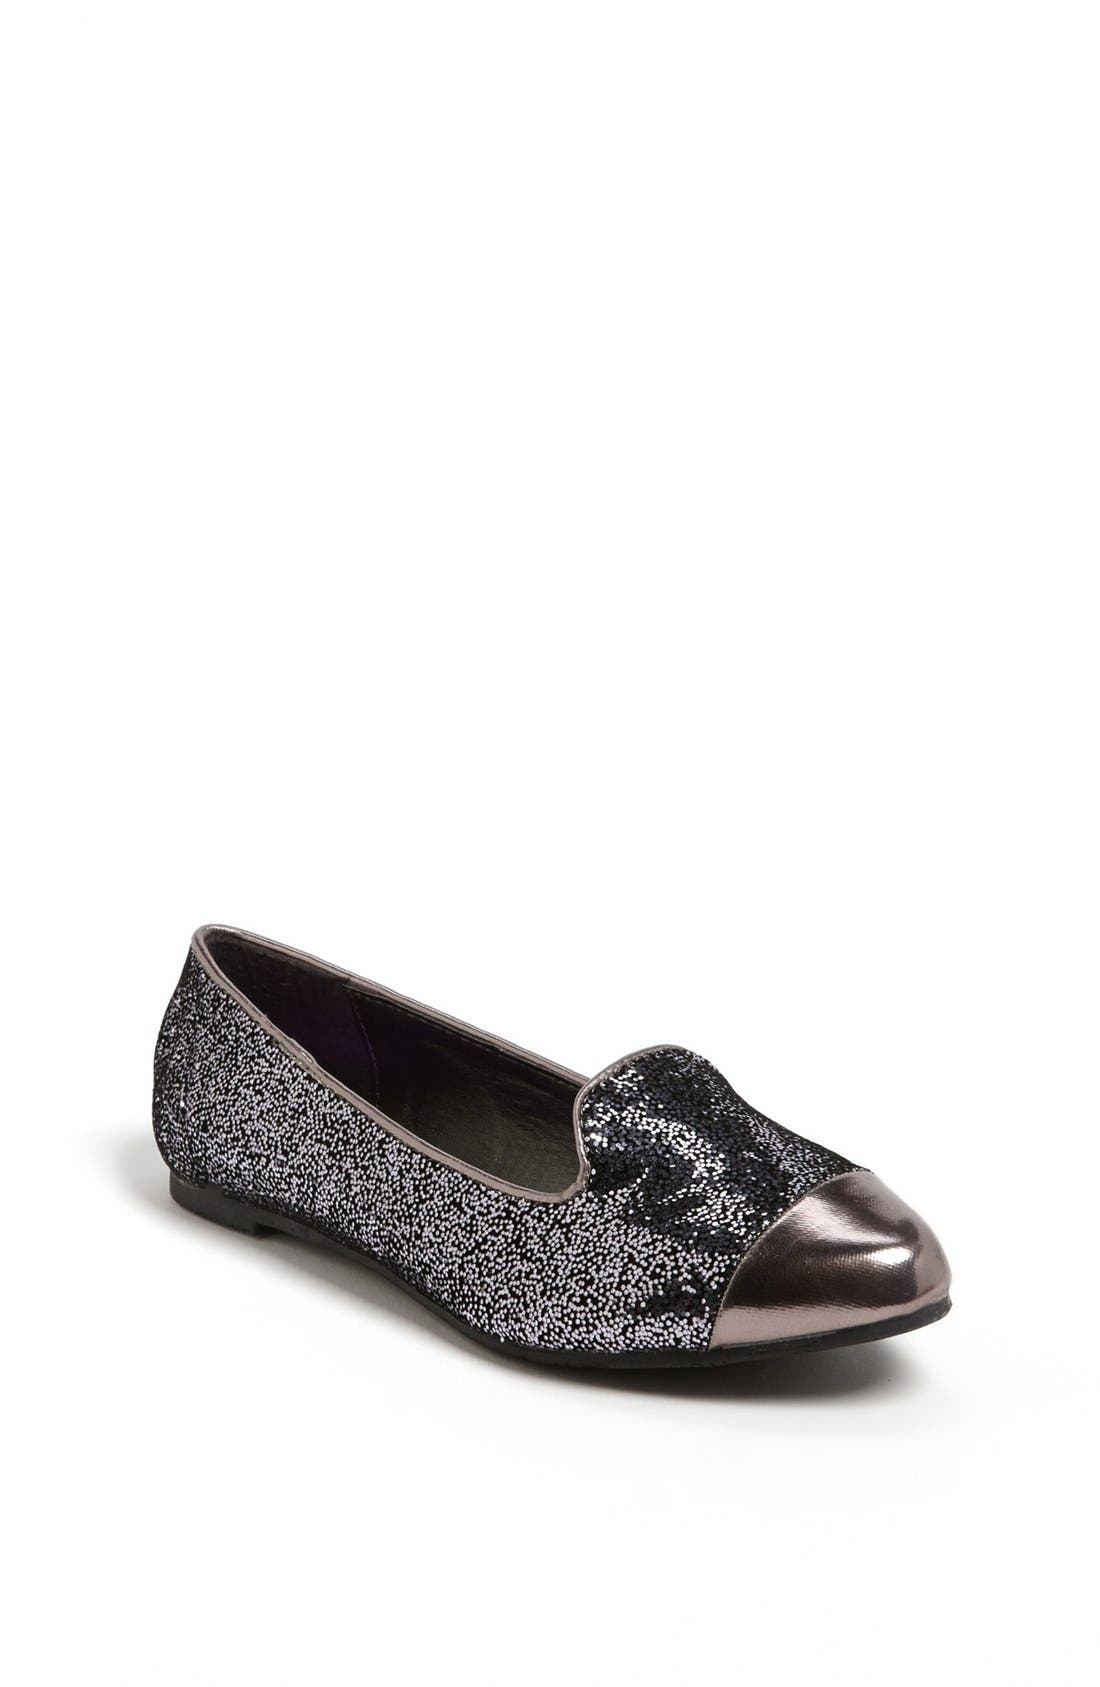 Main Image - kensie girl Glitter Flat (Toddler, Little Kid & Big Kid)